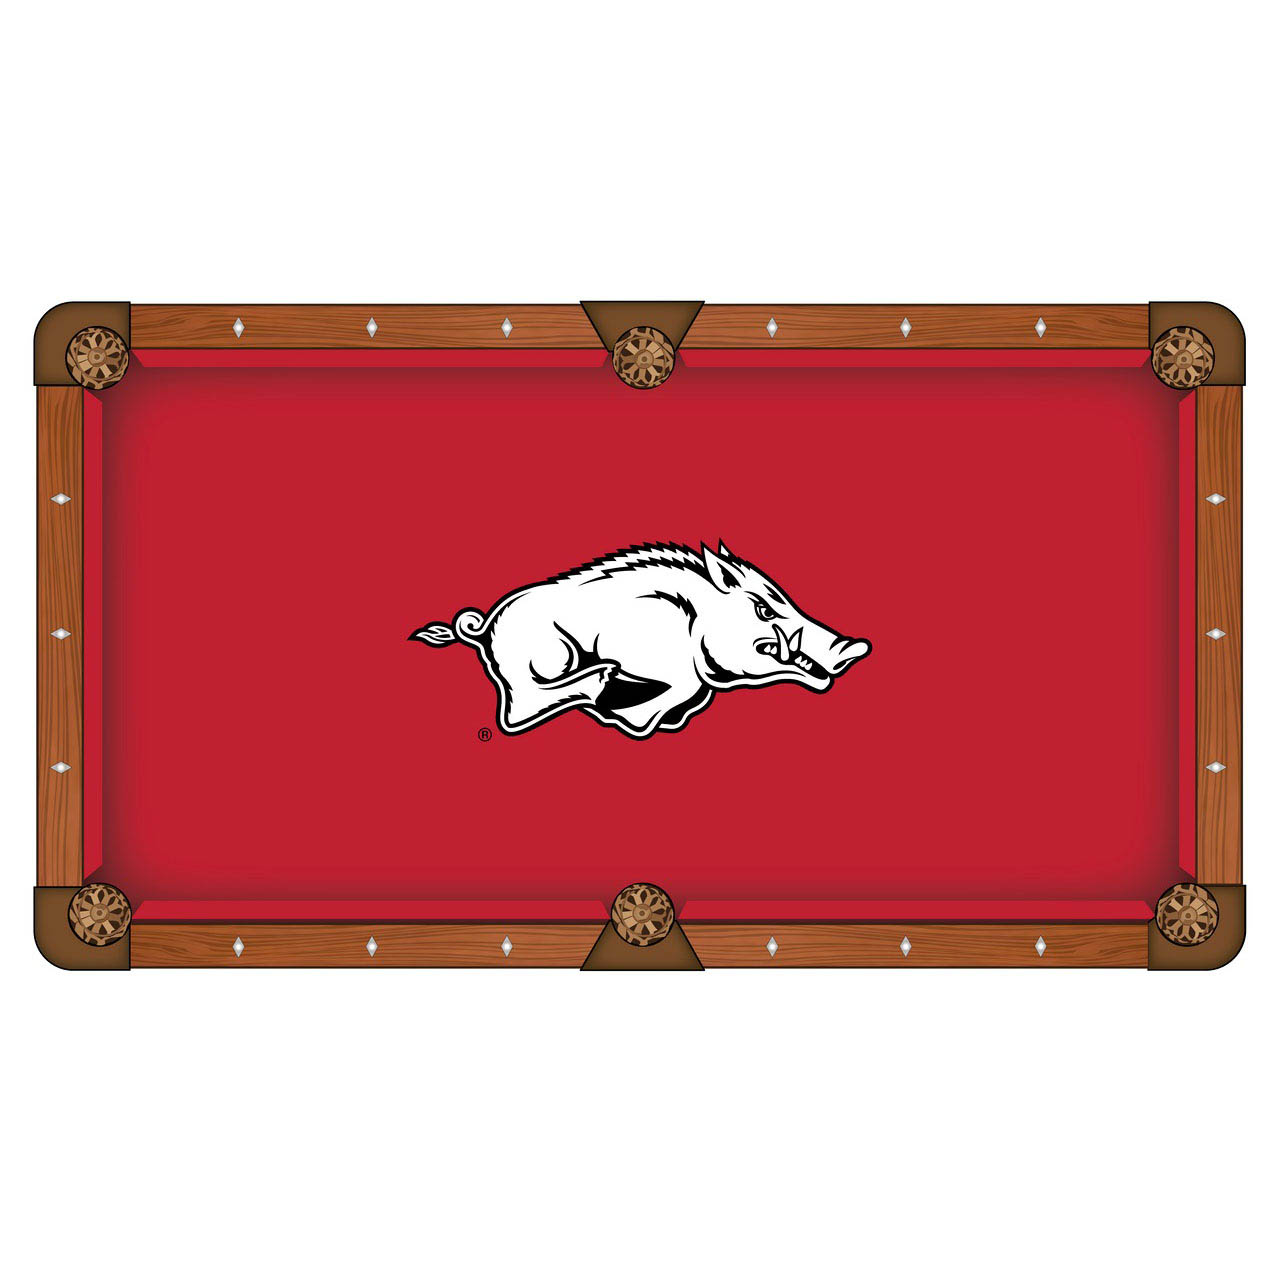 Stylish University Arkansas Pool Table Cloth Product Photo